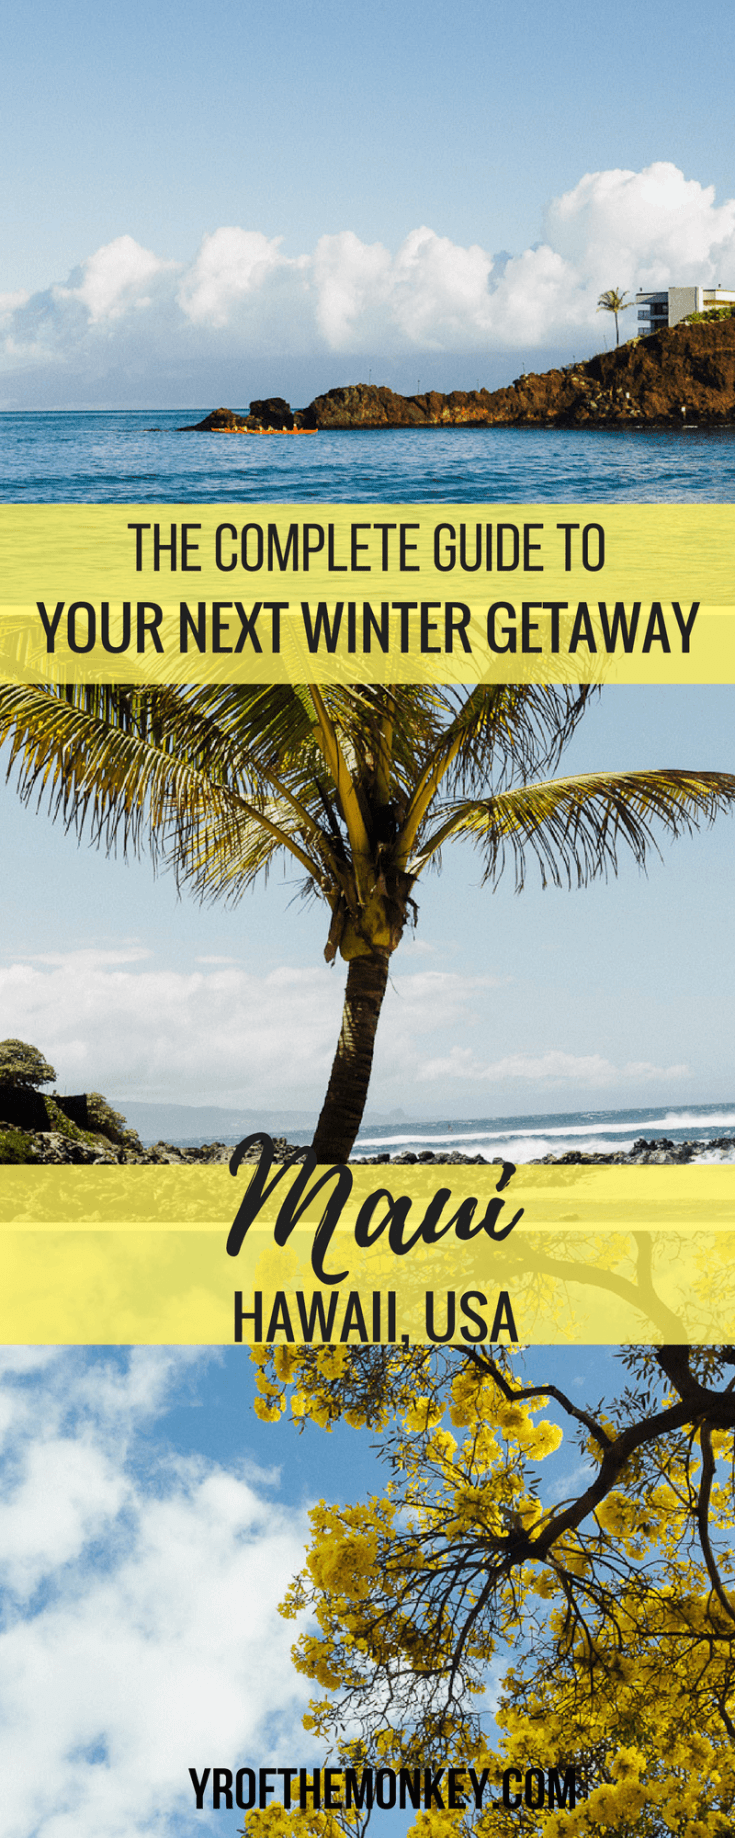 This is your complete travel guide to Maui, Hawaii, USA for that perfect winter vacation. Read this guide for tips on hotels, dining, major Maui attractions and a secluded beach for that perfect sunset. Pin it to your winter destinations guide or USA travel board for reference. #maui #hawaiitravel #wintervacation #USA